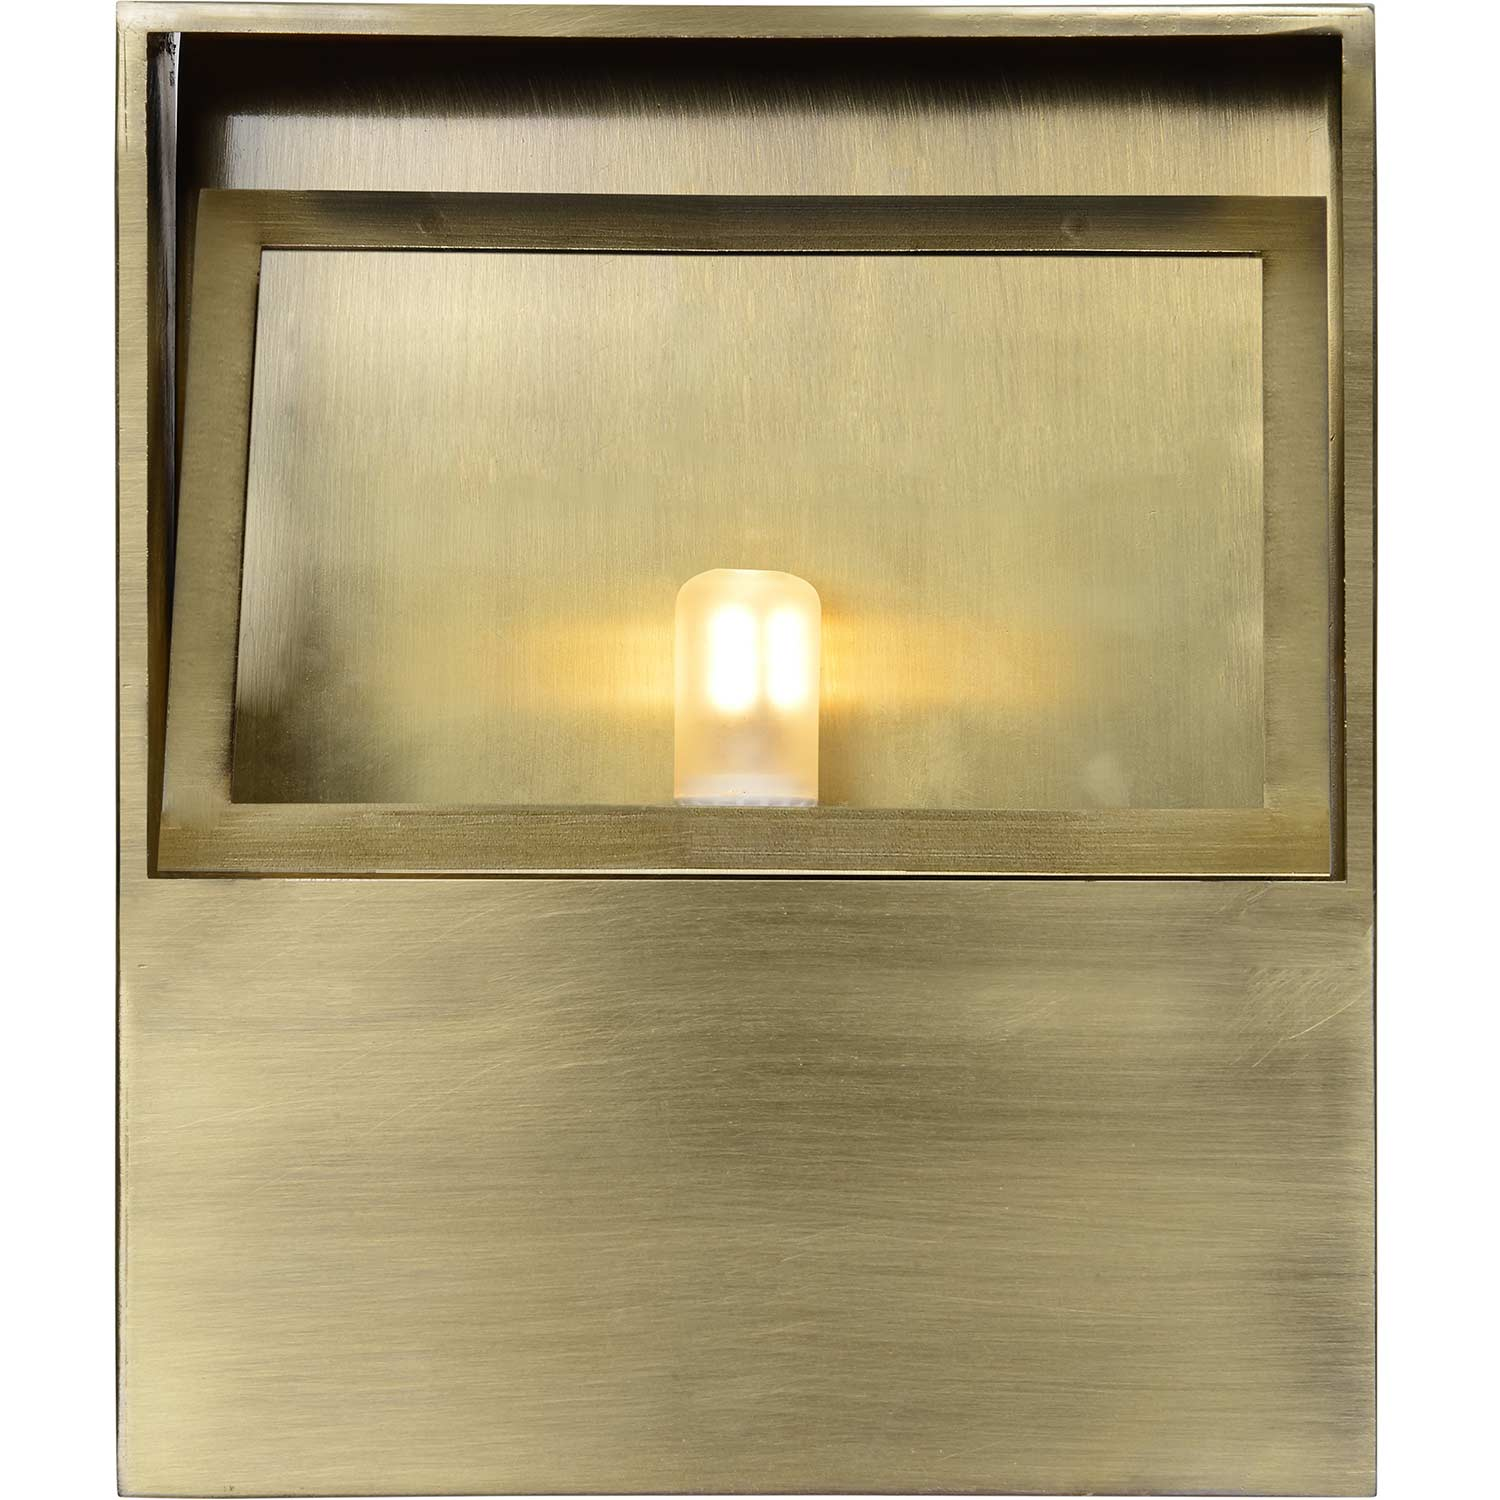 Ren-Wil Glenmore Wall Sconce - Antique Brass